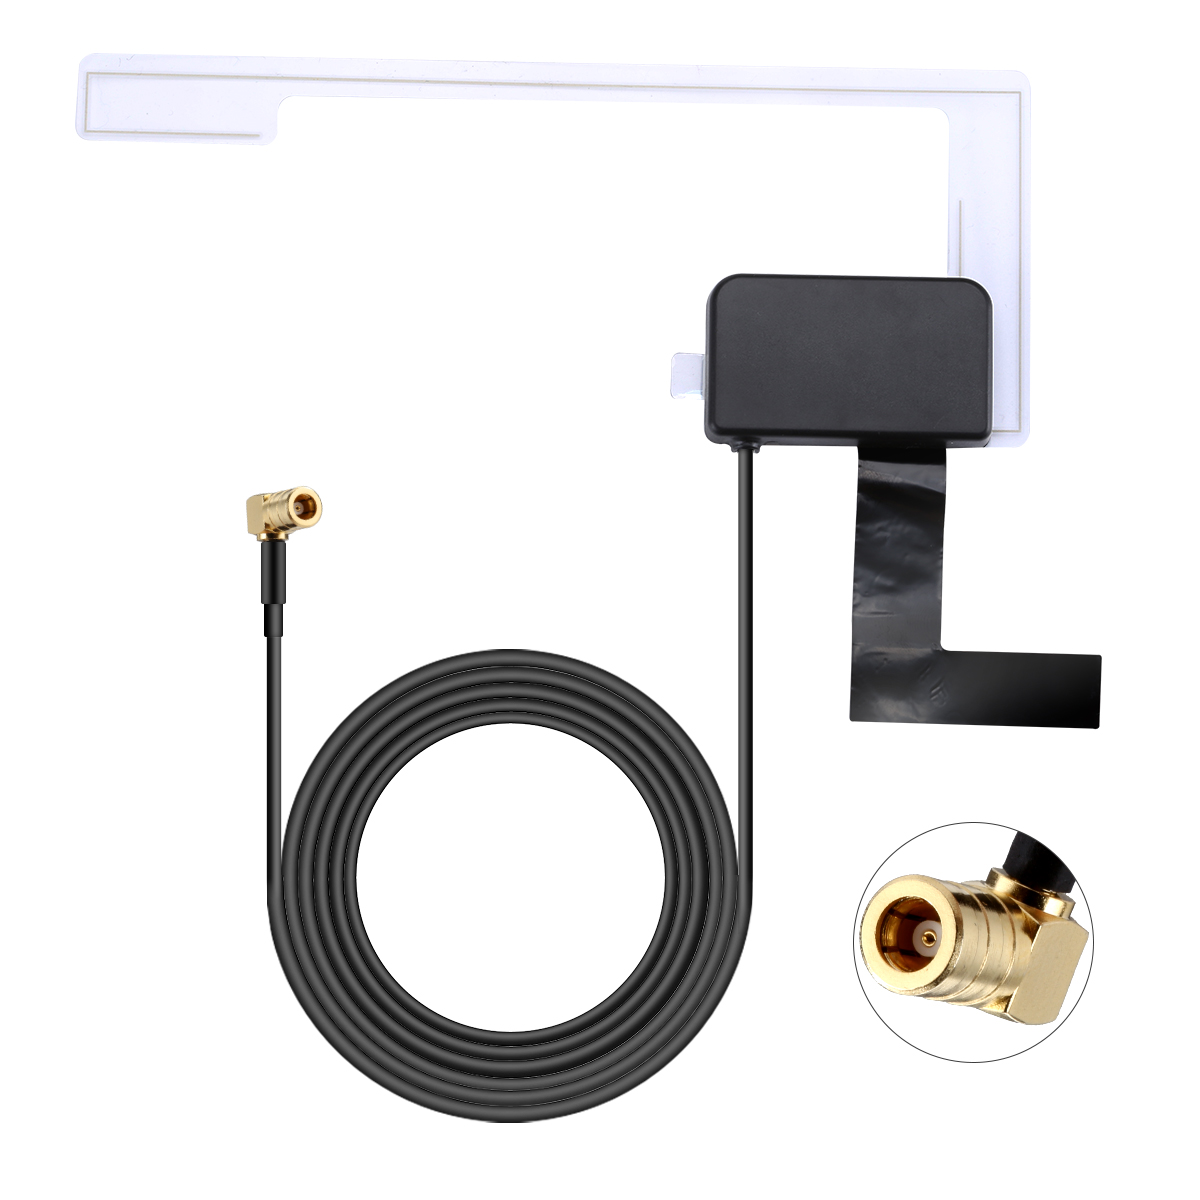 for DAB DAB Car Radio Antenna Patch Aerial Glass Mount Windshield Antenna 3m